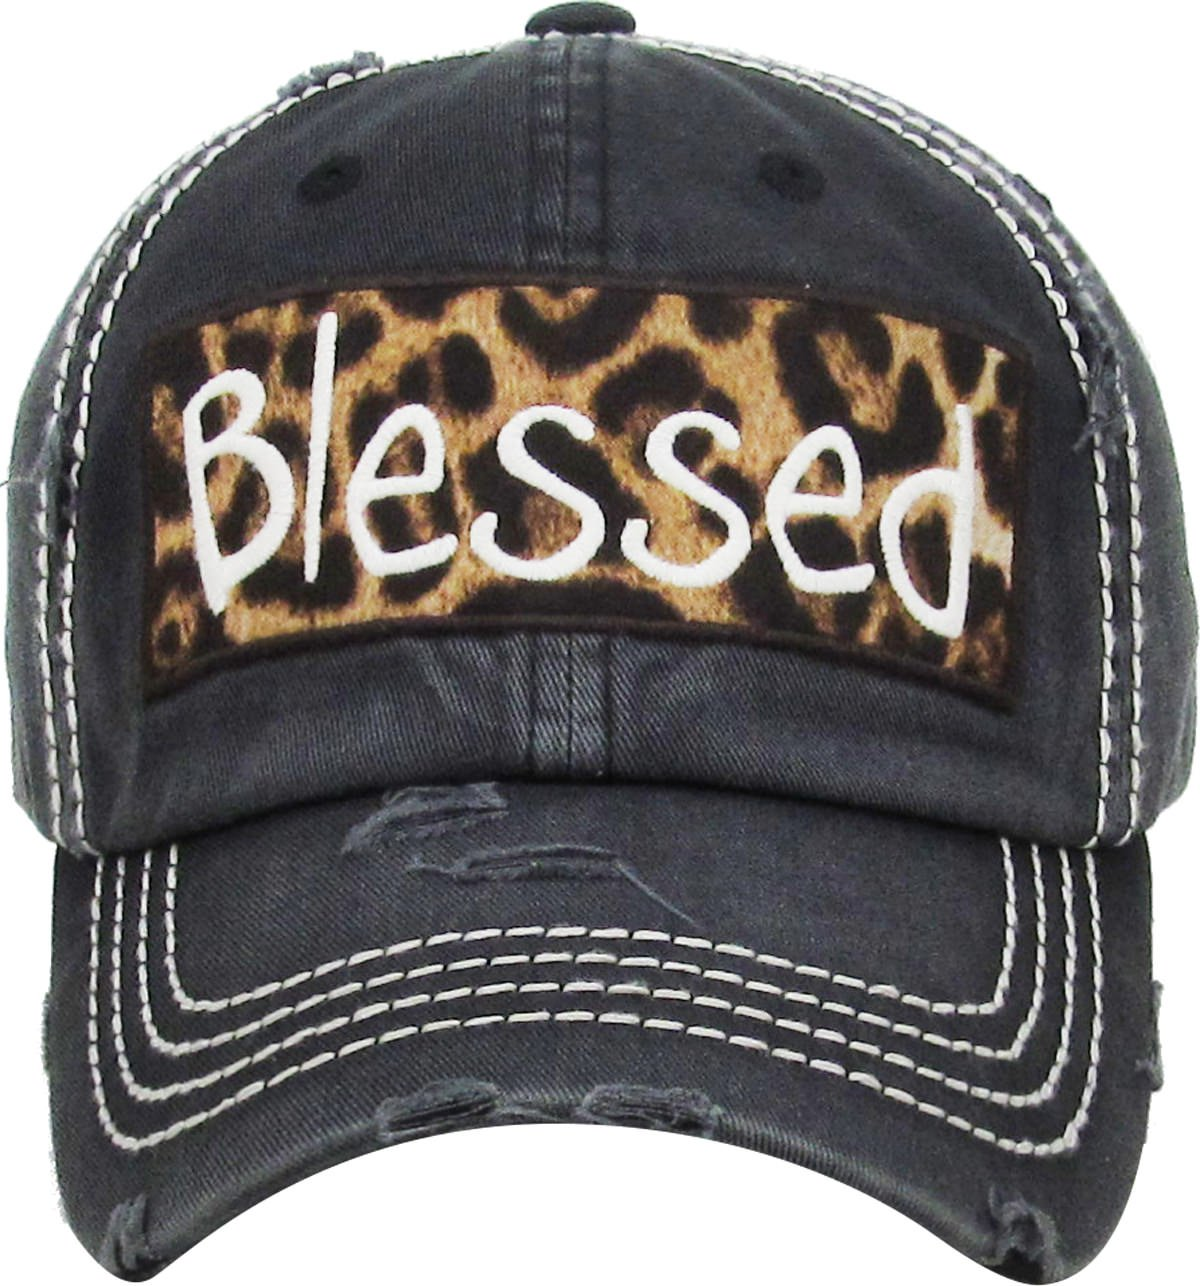 H-212-BLESSED06 Distressed Baseball Cap Vintage Dad Hat - Blessed (Leopard/Black)